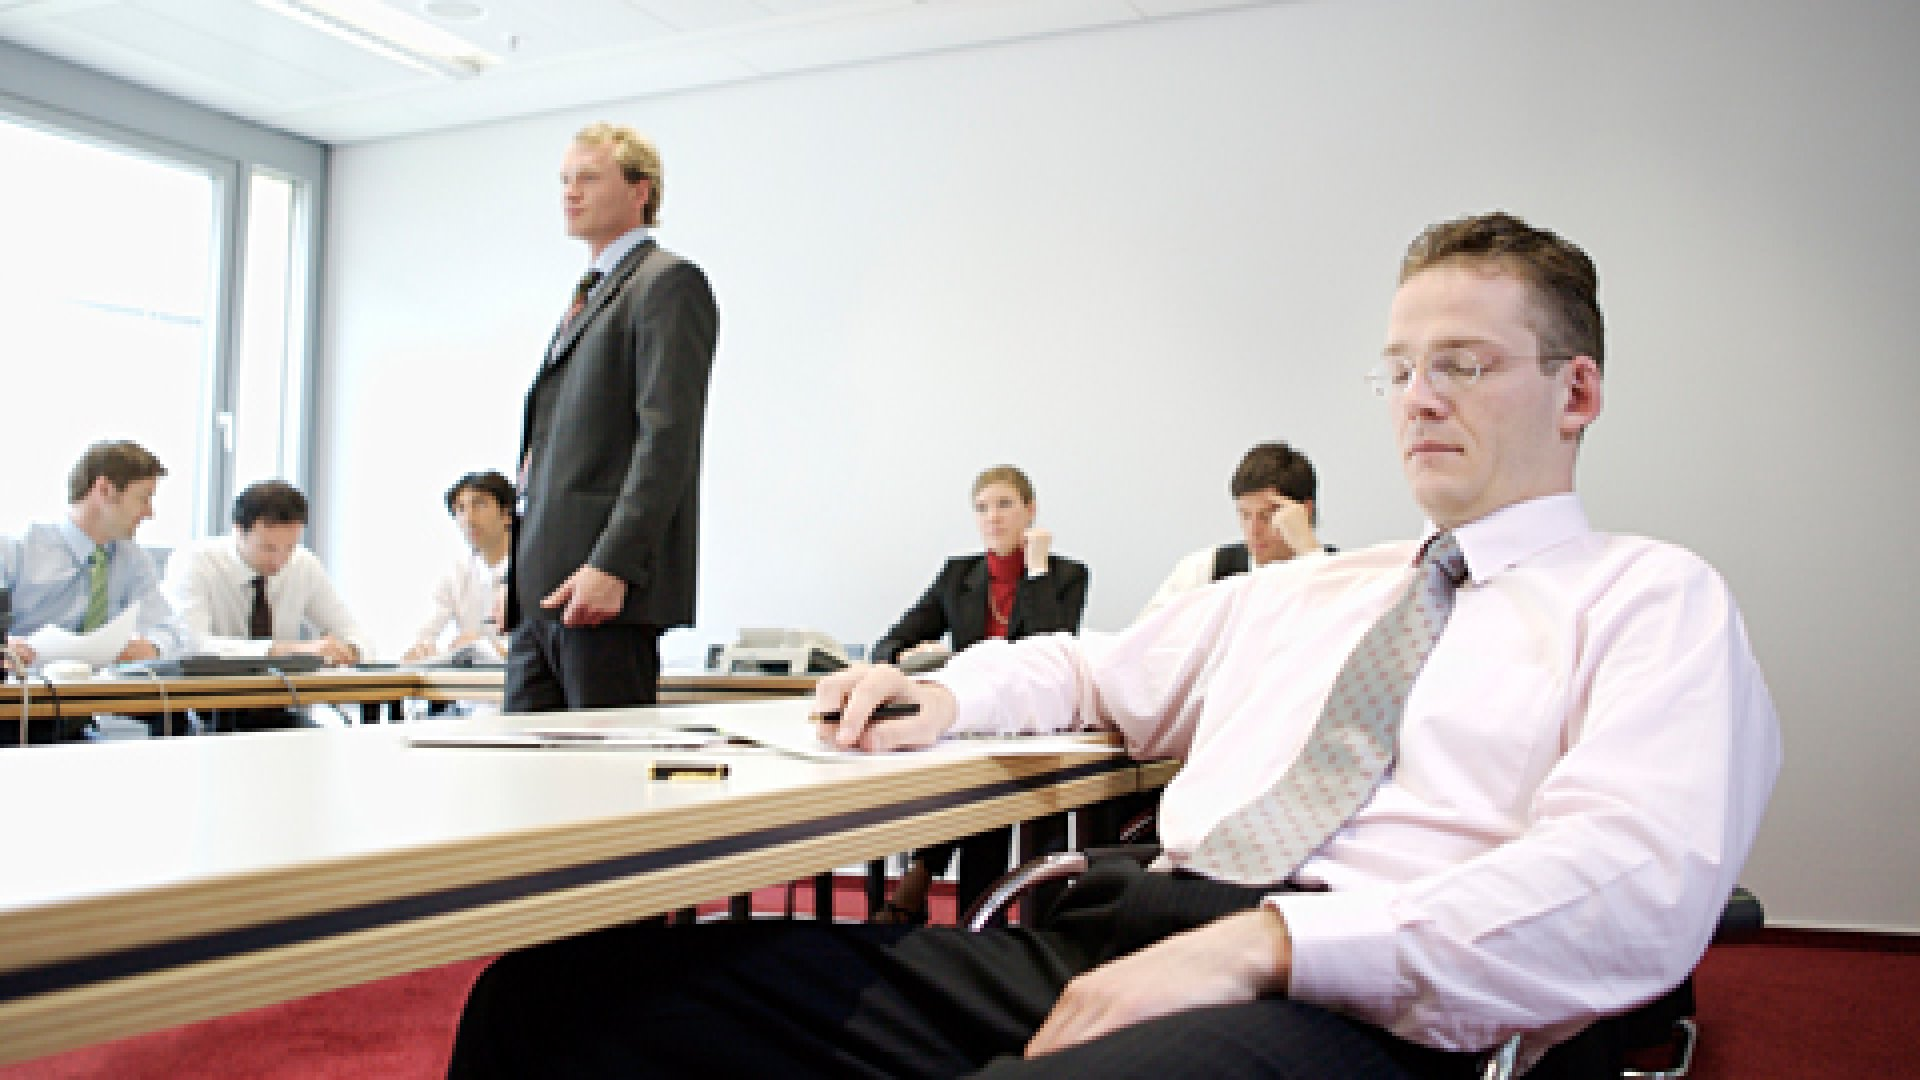 Super Bowl Monday: How to Deal with Hungover Employees